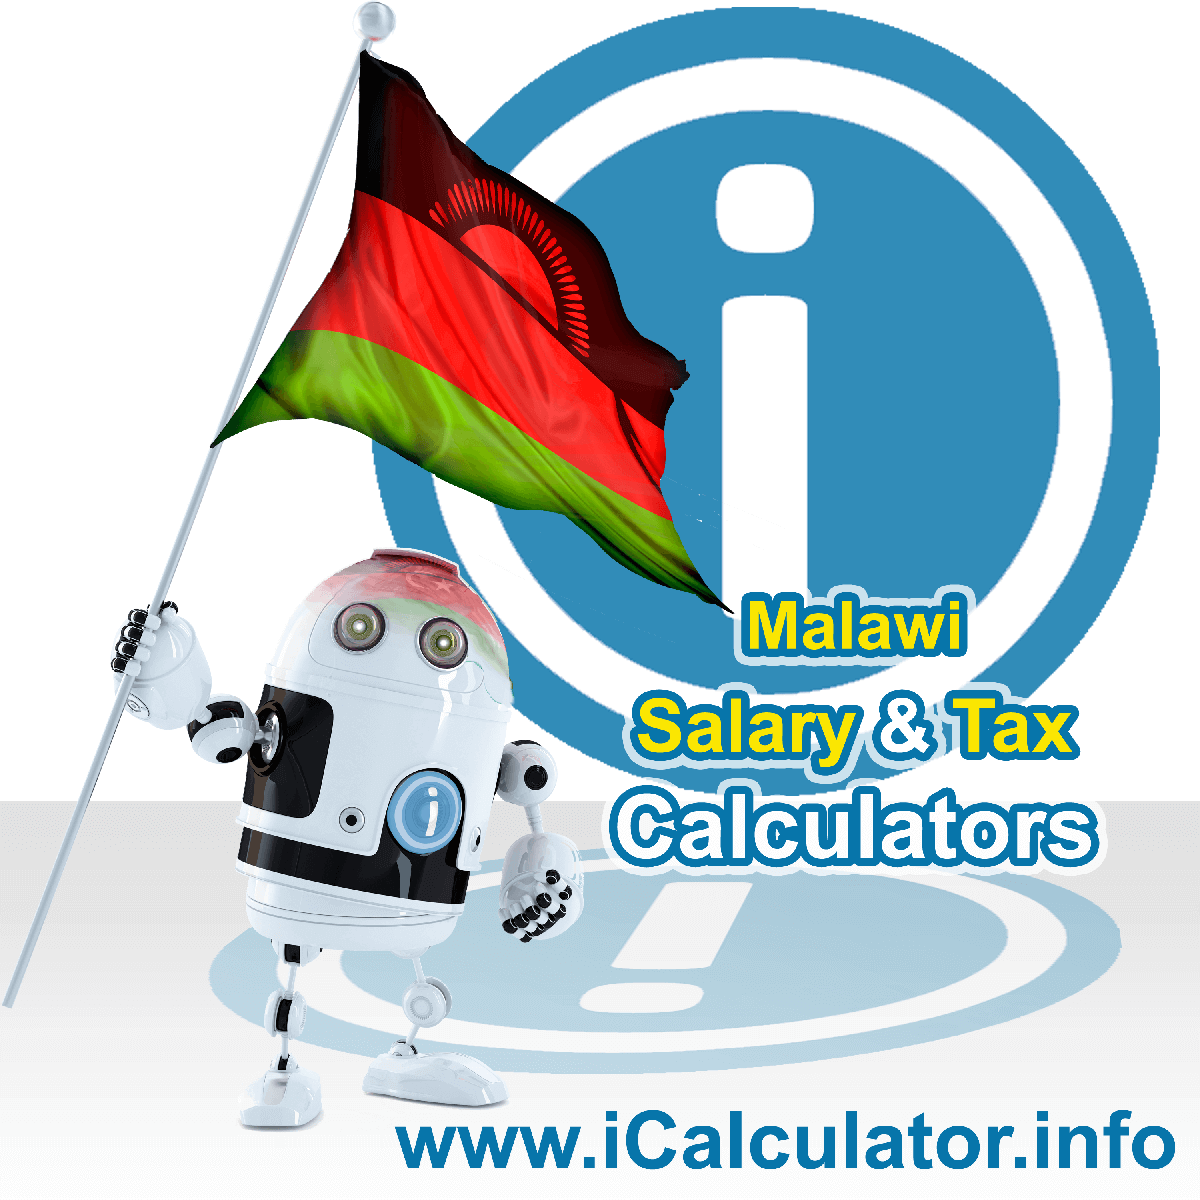 Malawi Wage Calculator. This image shows the Malawi flag and information relating to the tax formula for the Malawi Tax Calculator